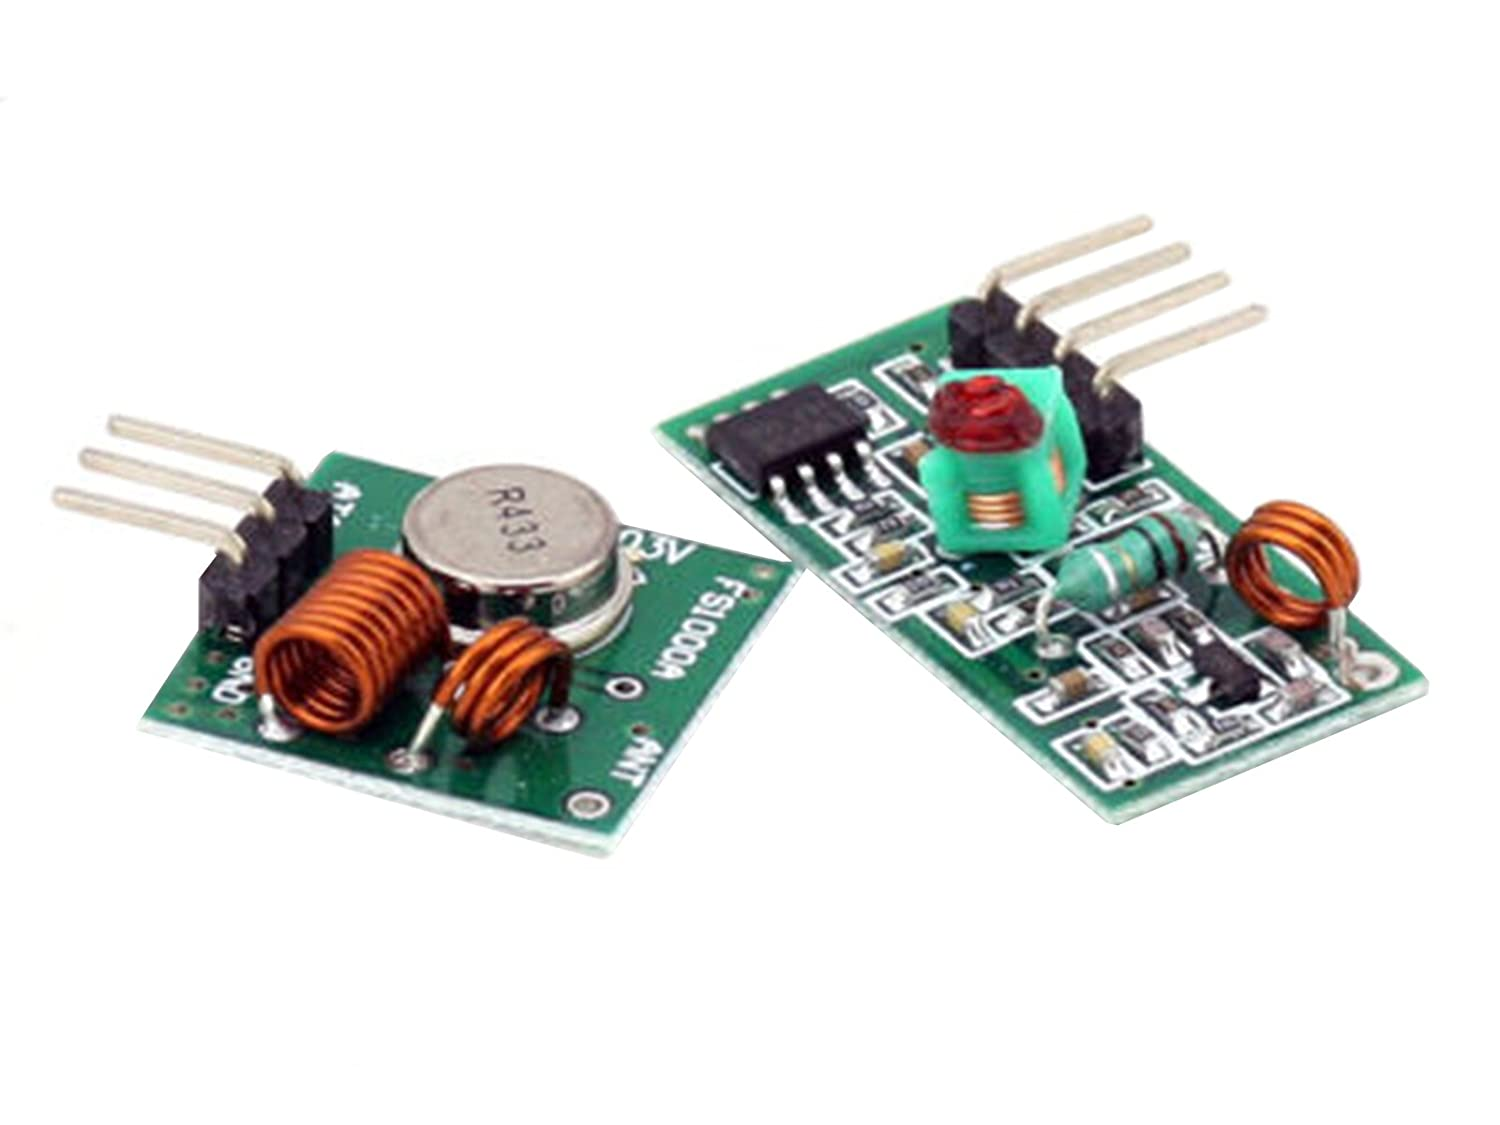 433mhz Rf Transmitter And Receiver Link Kit For Arduino How To Build Opamp Vhf Fm Arm Mcu Wl Cell Phones Accessories